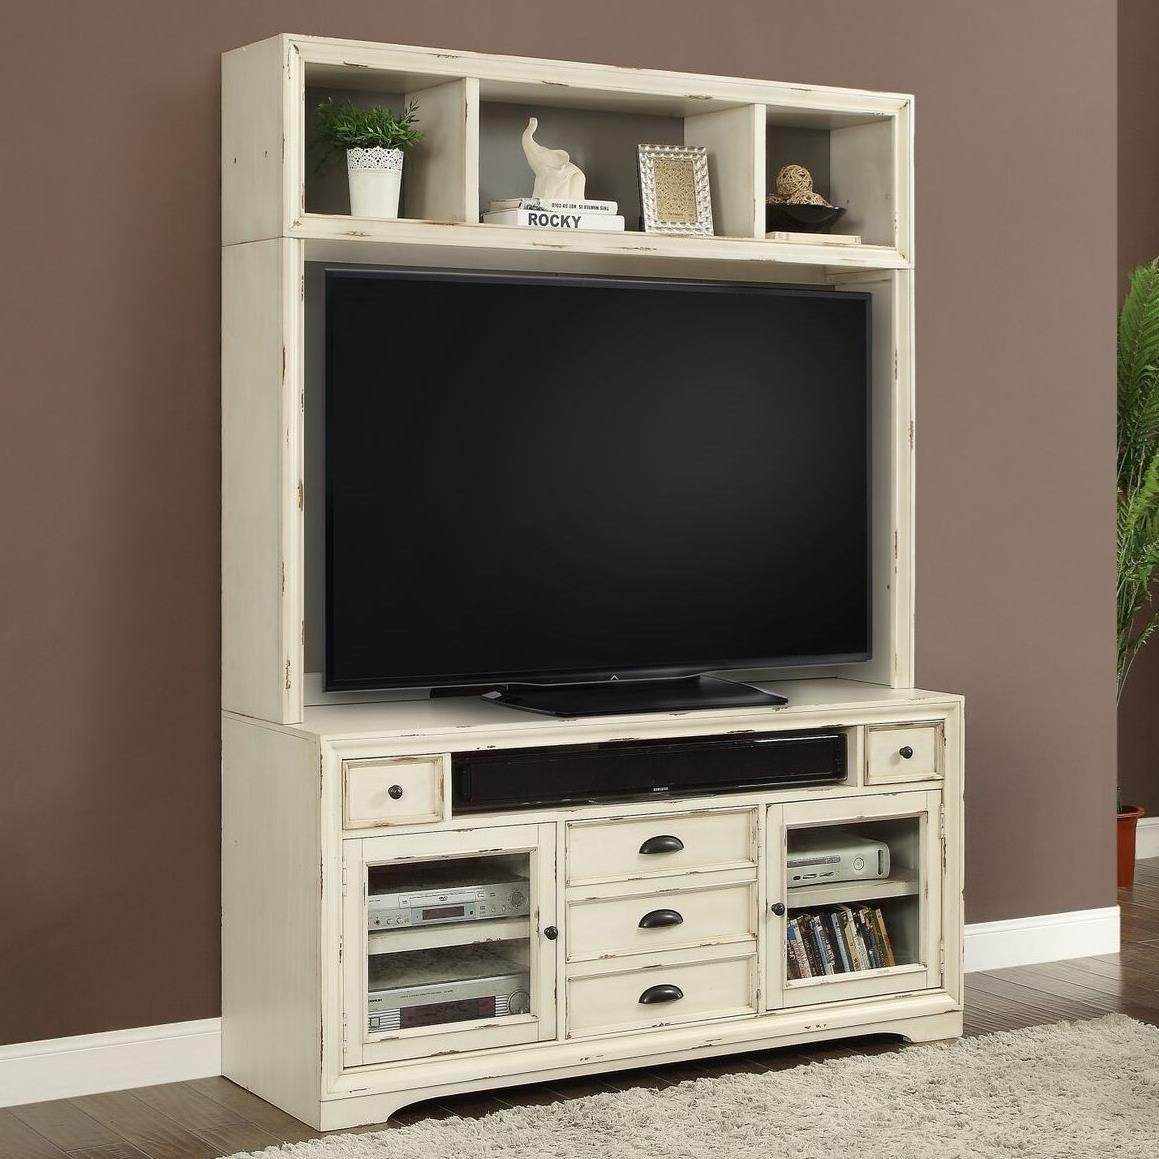 Nantucket TV Stand with Hutch by Parker House at Baer's Furniture